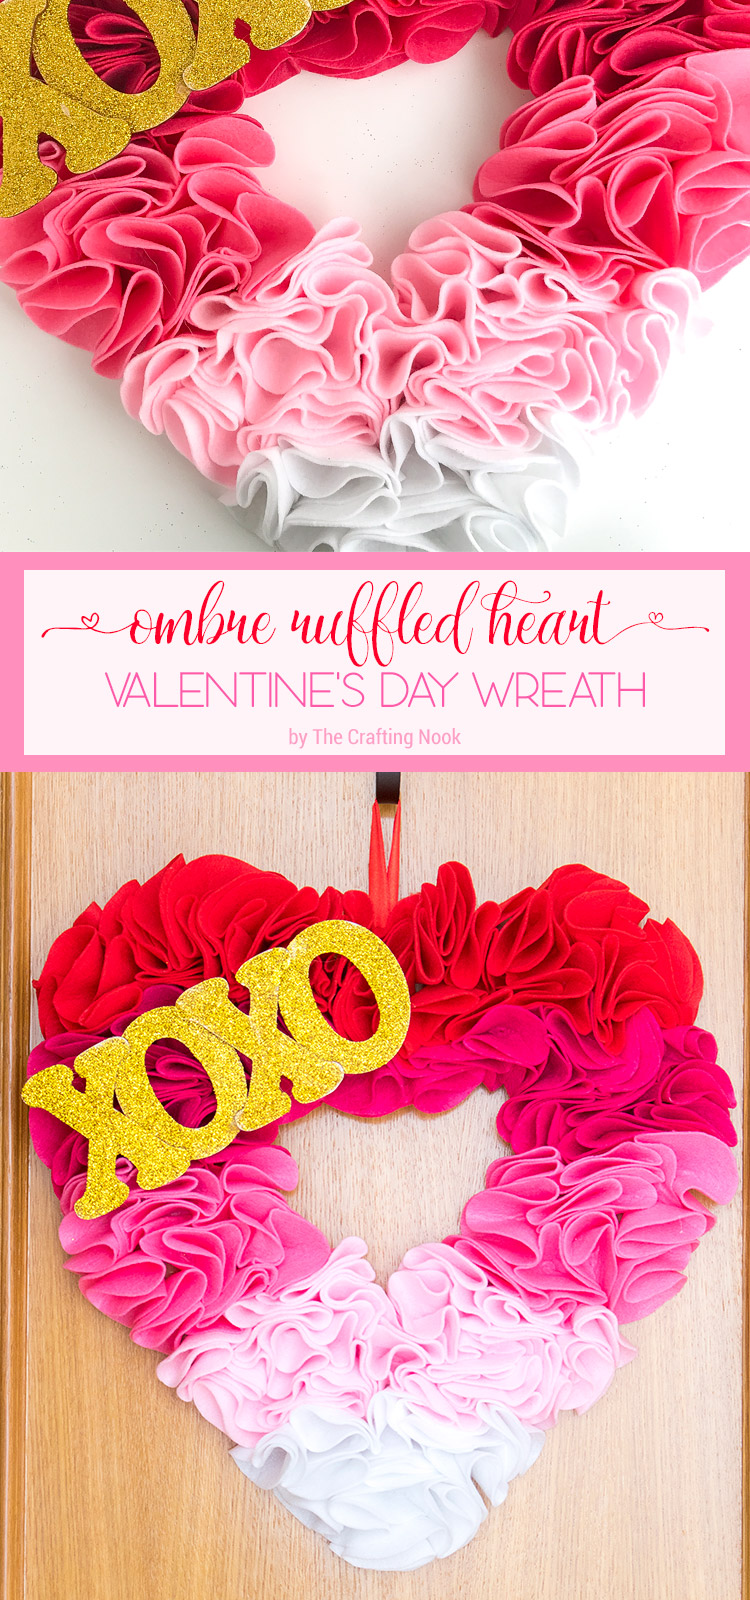 Easy Ombre Ruffled Heart Valentines Day Wreath